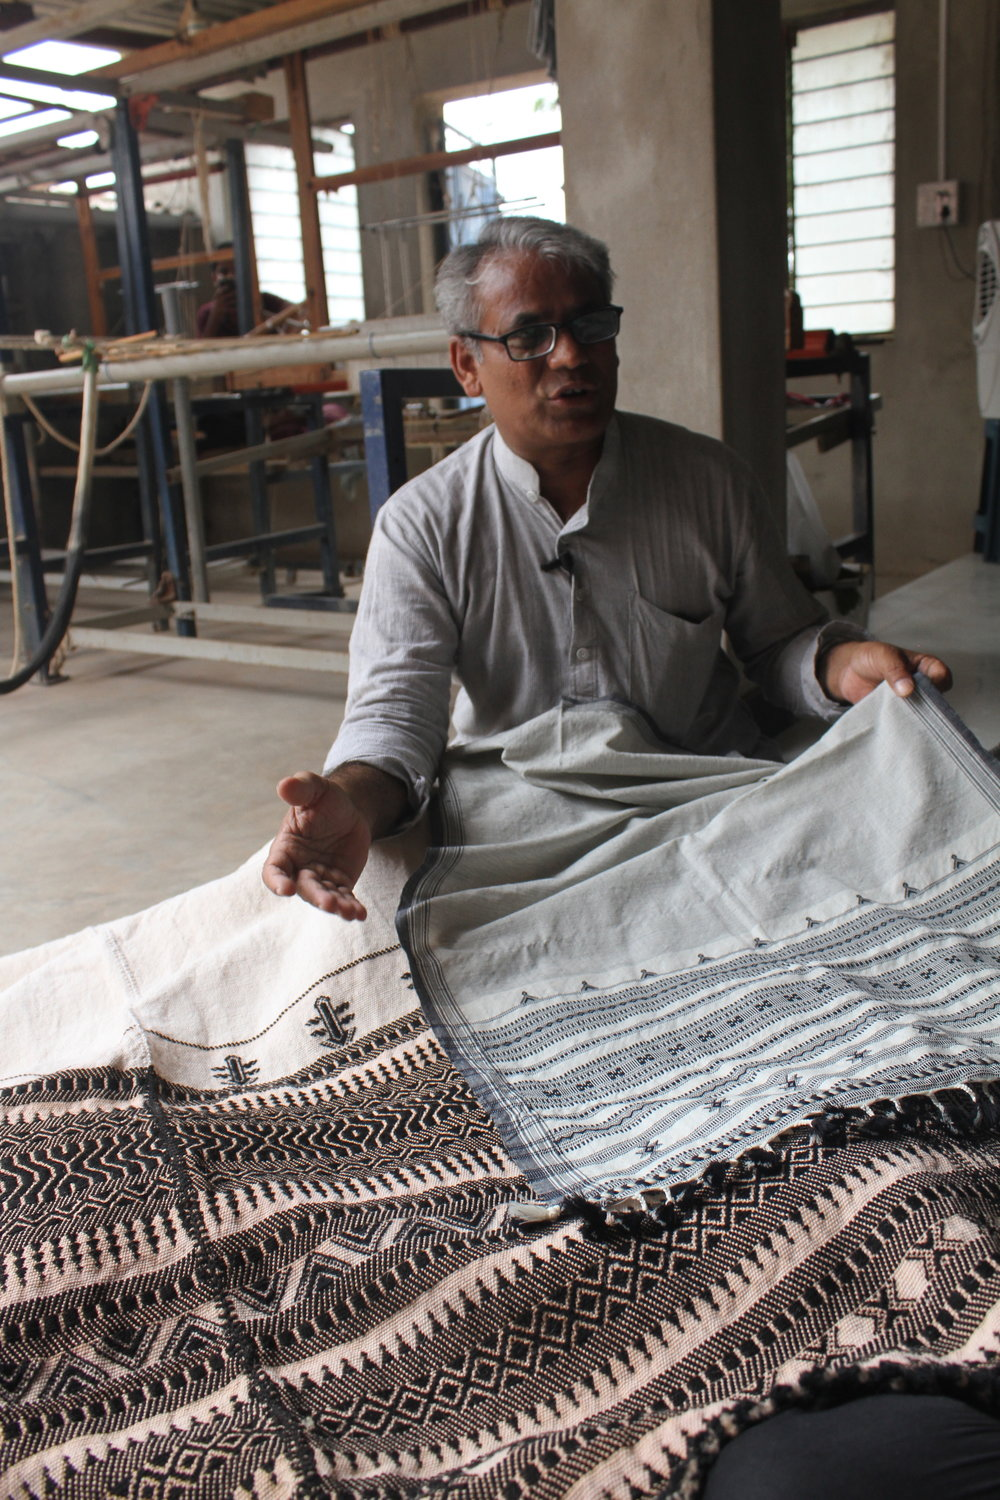 Dayalal Kudecha, a weaver from Bhujodi who attended KRV in 2008, after which he worked his way up from job-weaver to weaver-designer, entrepreneur and teacher. His products have a distinct look. He has perfected the use of natural dyes to achieve stunning color palettes, using a range of materials including different types of silk, and adapting traditional motifs and patterns to create high-quality designs.  Photo: Ruth Clifford